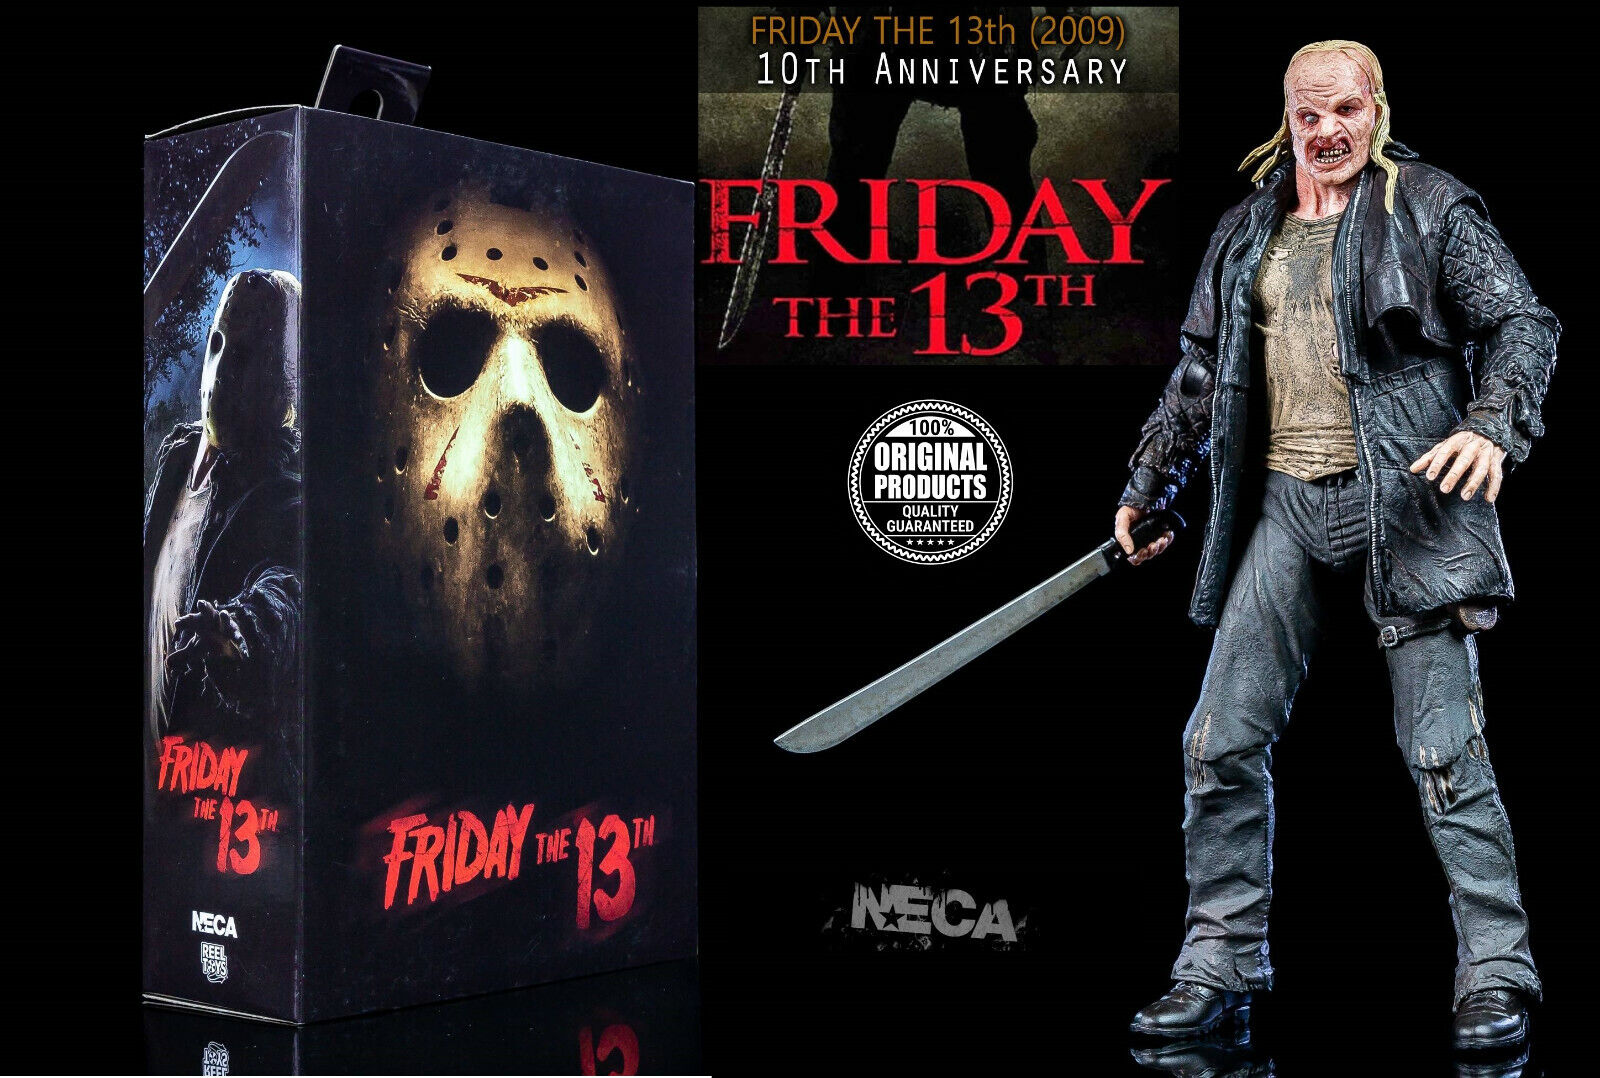 NECA-Friday the 13th - 2009-Ultimate Jason Voorhees - 10th Anniversary -